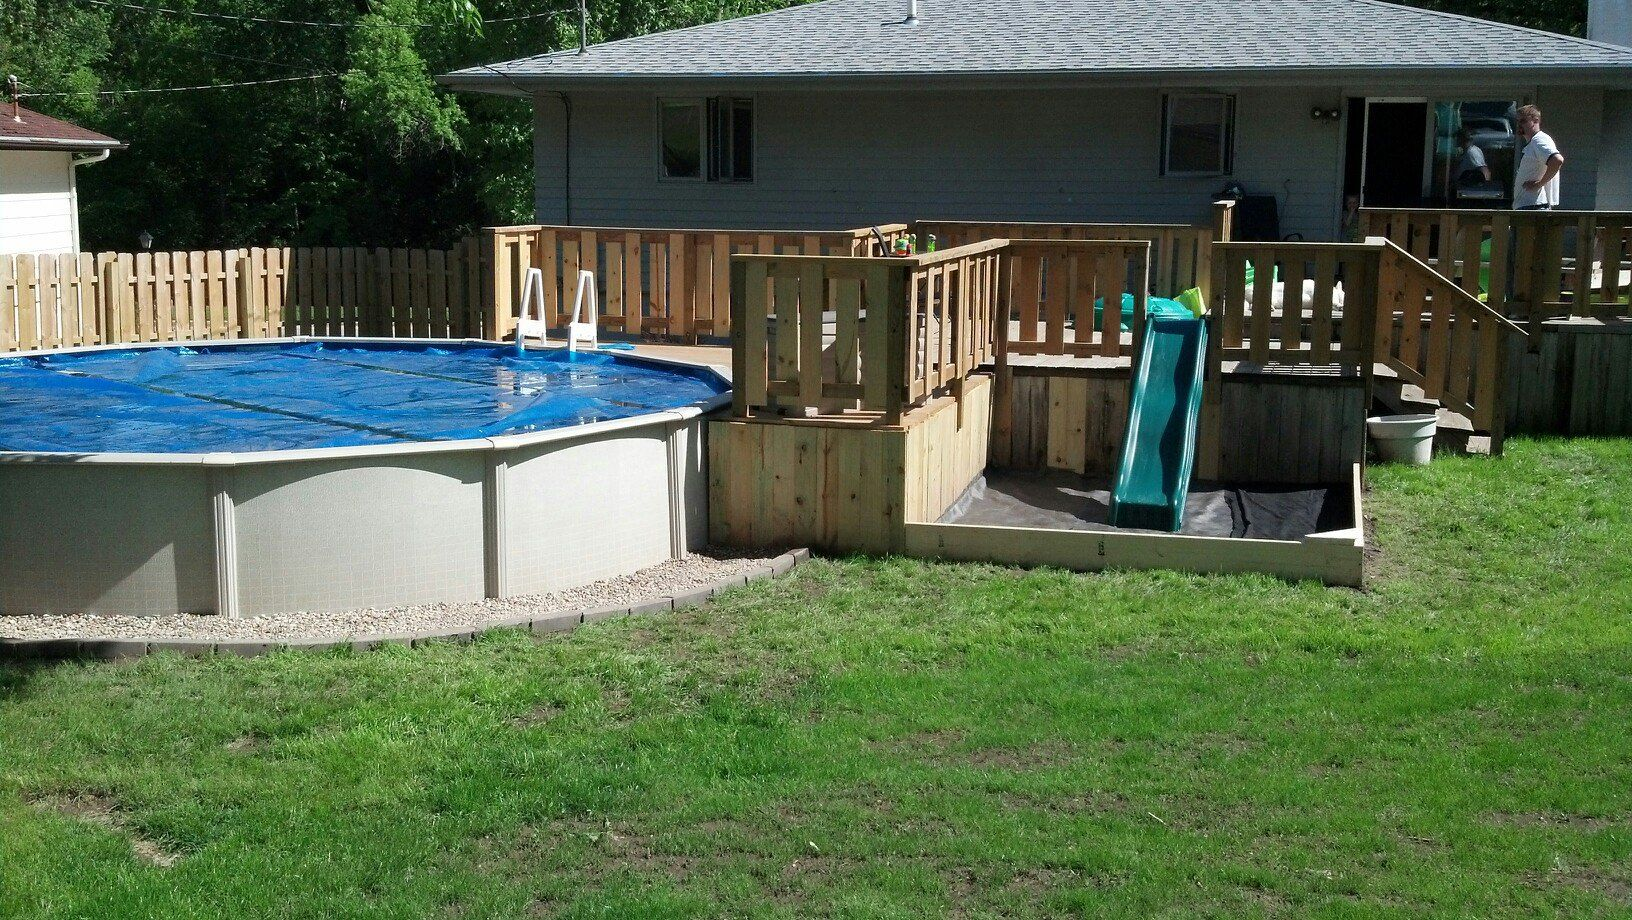 Almost Complete 21 39 Above Ground Pool With Deck Land